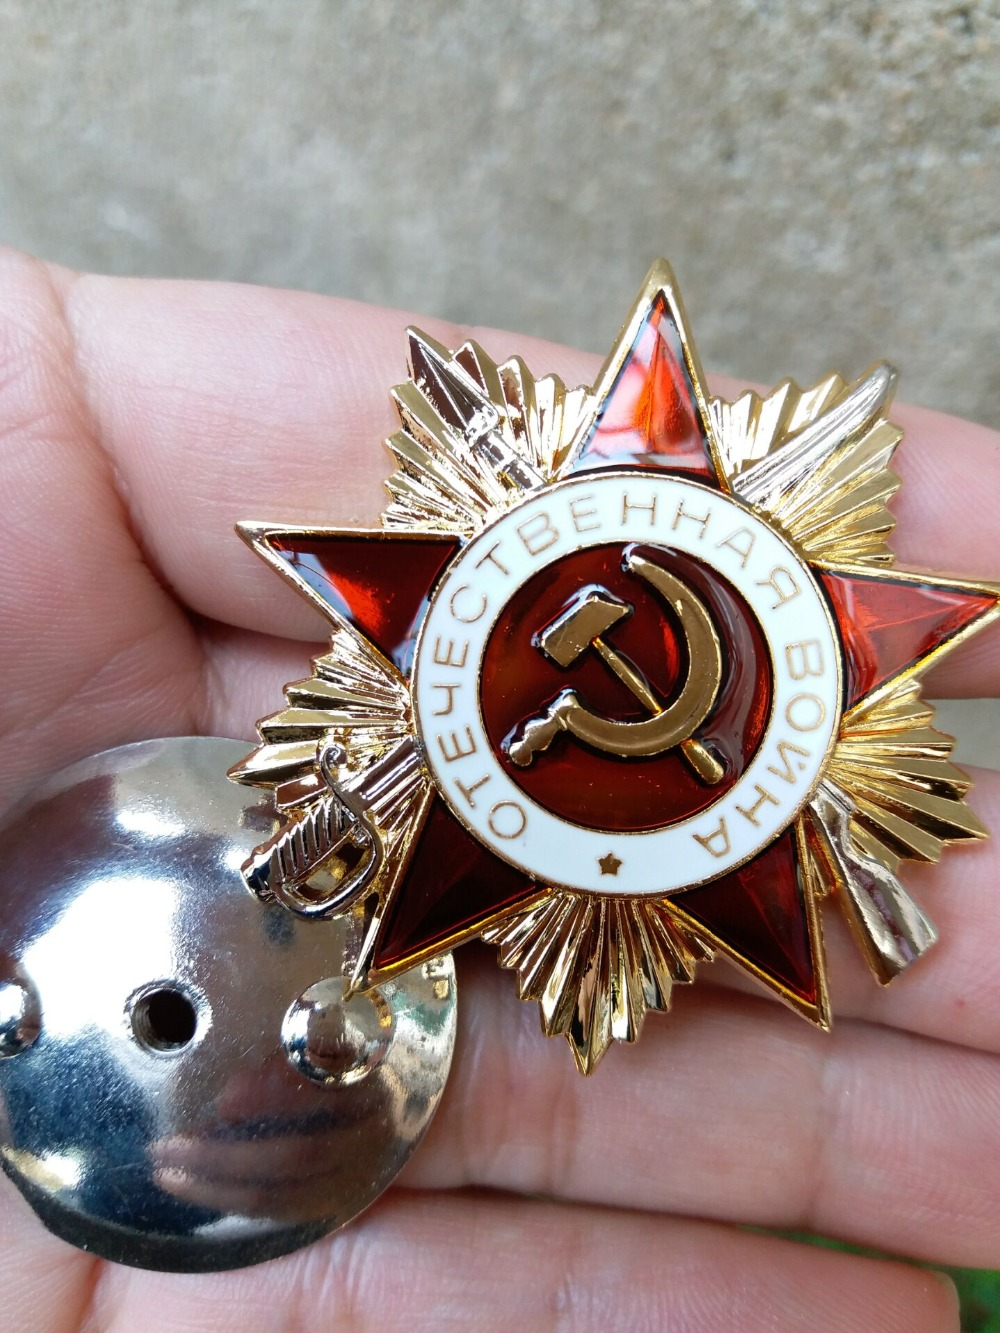 Collectibles 100% Silver Russian Soviet Military Patriotic War Wwii Medal Order Award Badge